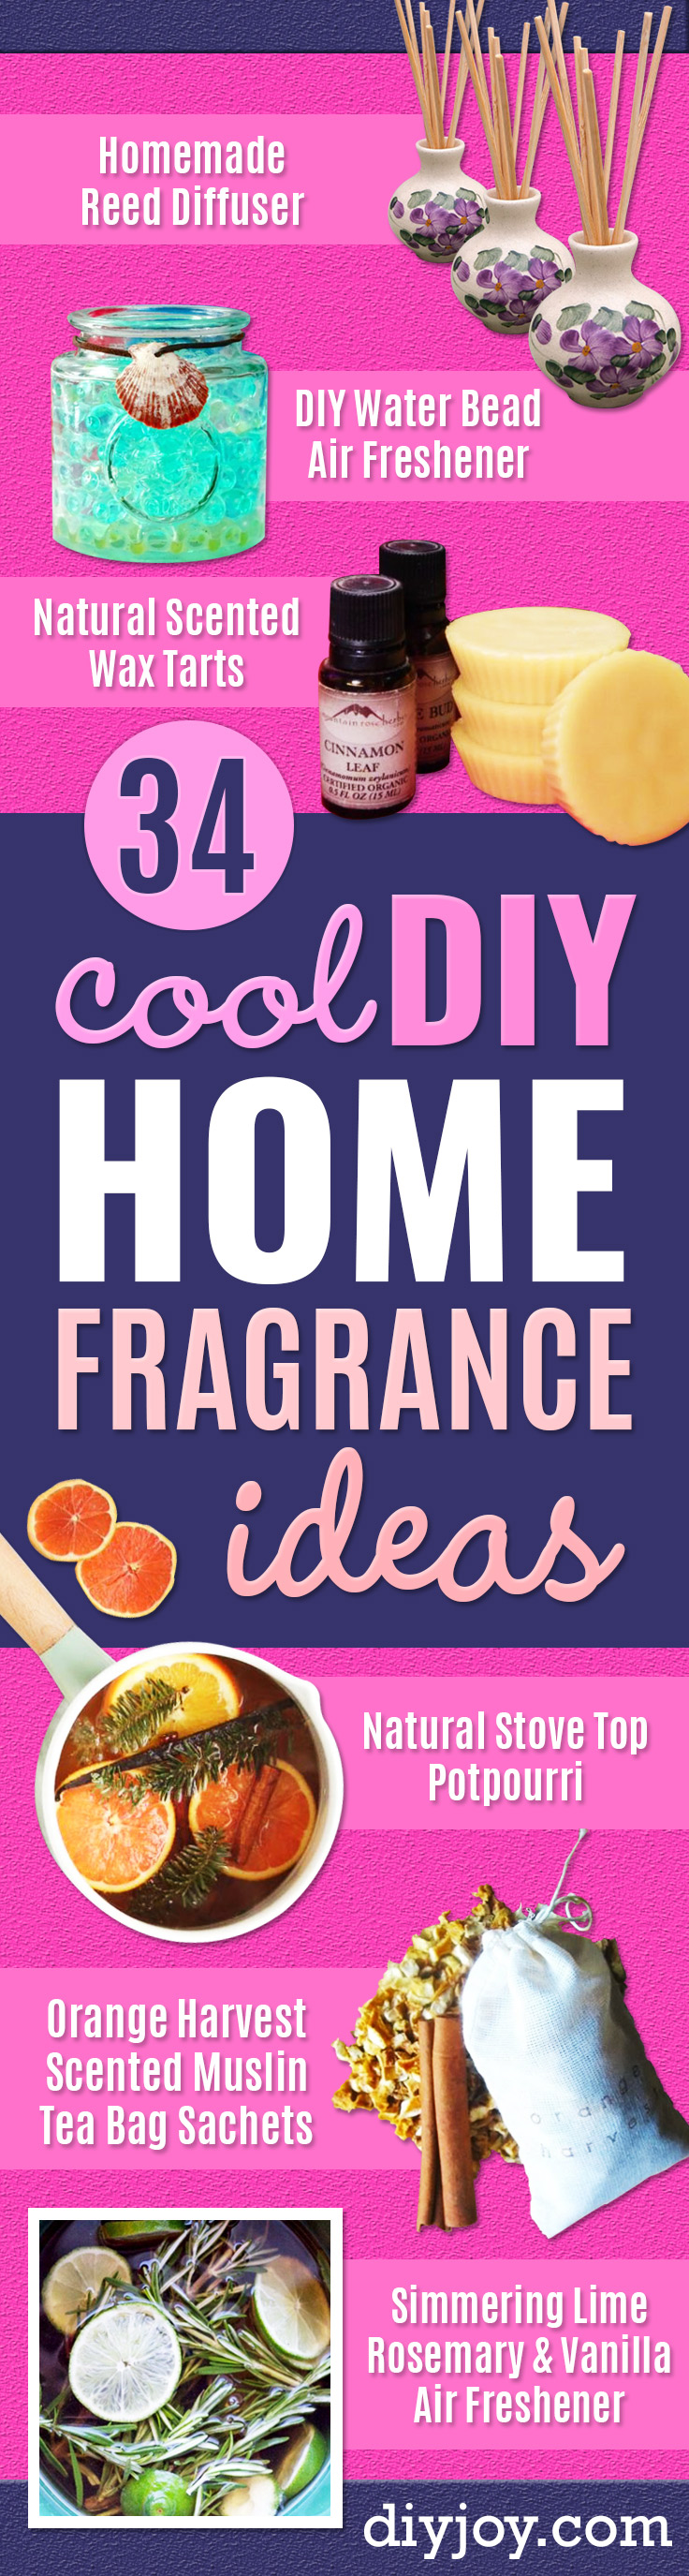 DIY Home Fragrance Ideas - Easy Ways To Make your House and Home Smell Good - Essential Oils, Diffusers, DIY Lampe Berger Oil, Candles, Room Scents and Homemade Recipes for Odor Removal - Relaxing Lavender, Fresh Clean Smells, Lemon, Herb http://diyjoy.com/diy-home-fragrance-ideas